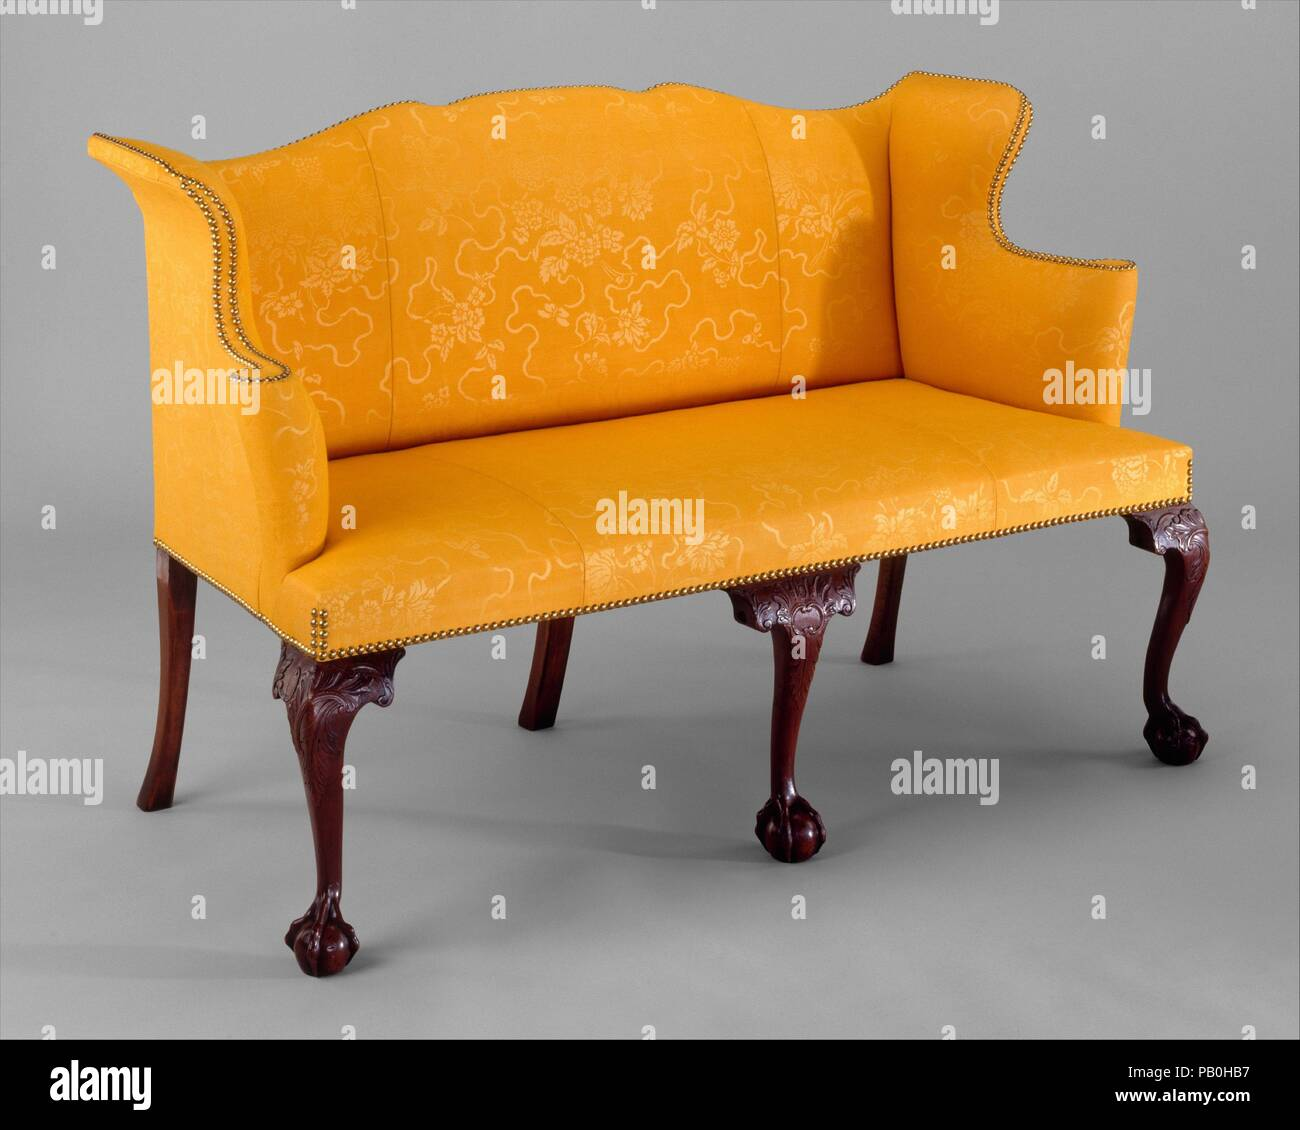 Settee. Culture: American. Dimensions: 36 3/8 x 57 1/2 x 26 in. (92.4 x 146.1 x 66 cm). Date: 1760-90.  This is one of only two fully upholstered cabriole-leg Massachusetts settees that are known today. It belongs to a small group of Boston furniture characterized by asymmetrically arranged C-scrolls and knee carving in foliage patterns. The flared wings and bow-shaped back are supreme manifestations of New England Rococo design. Museum: Metropolitan Museum of Art, New York, USA. - Stock Image